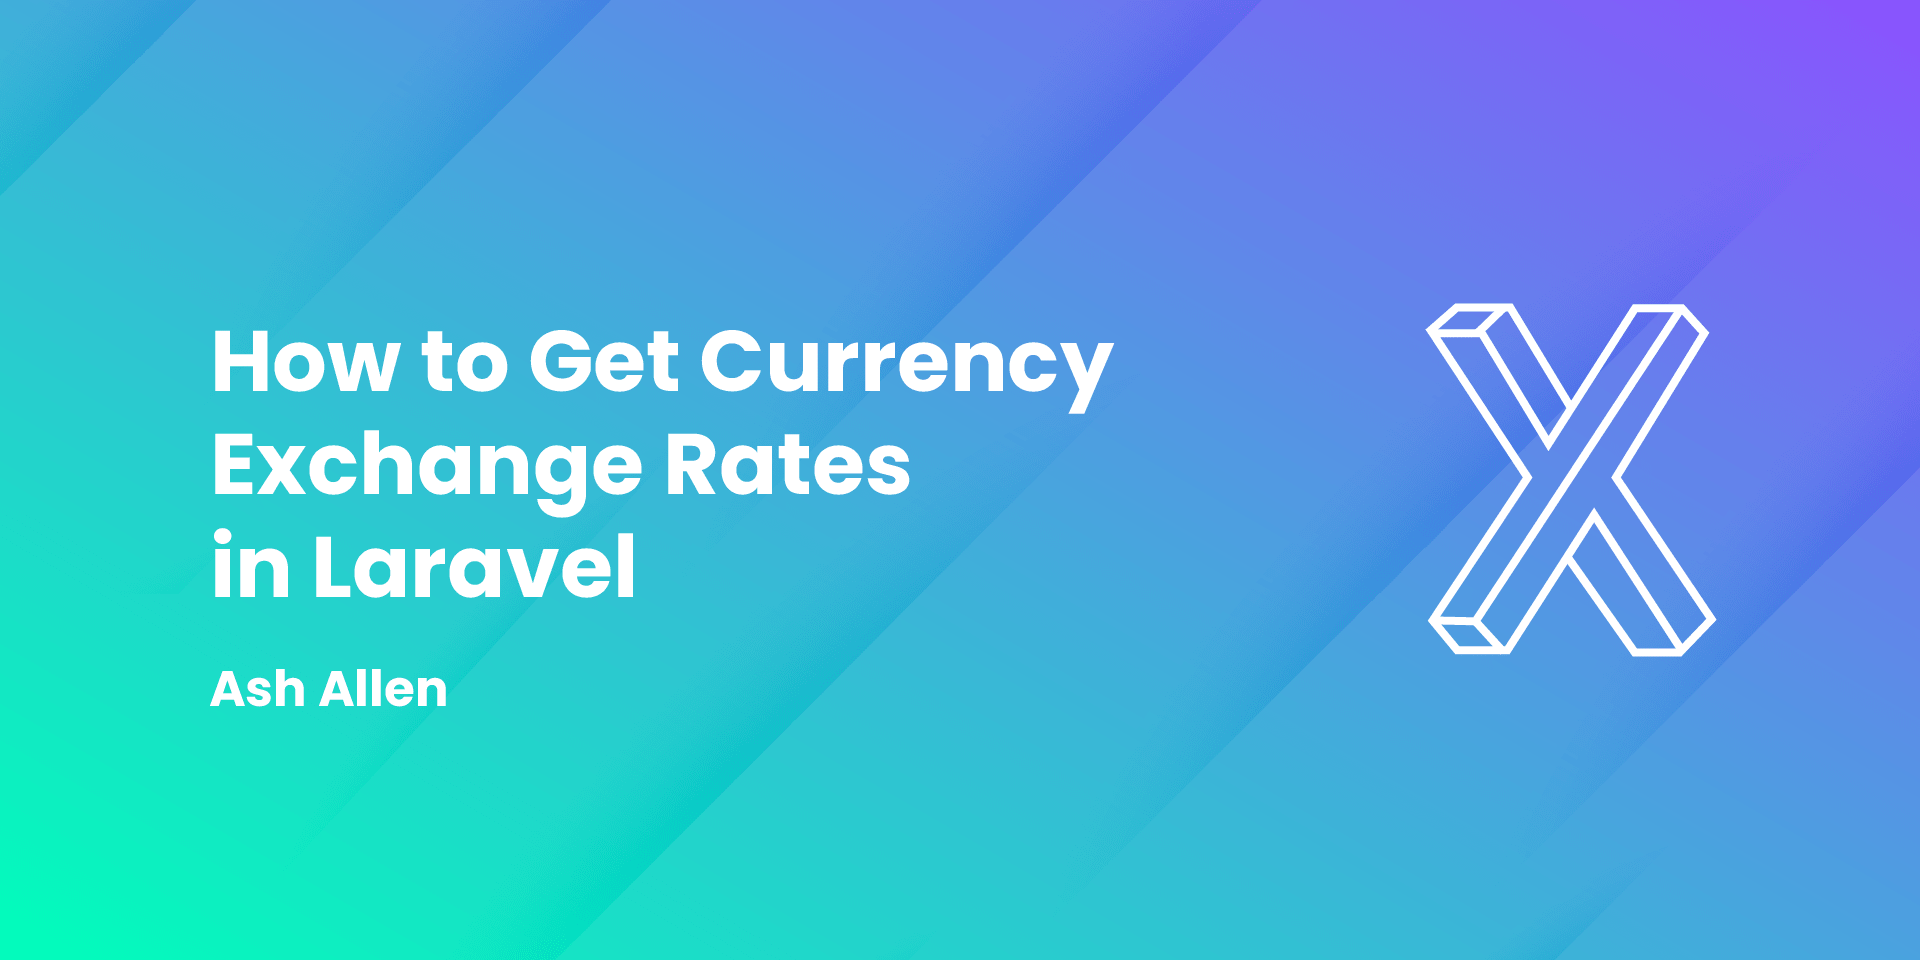 Learn about how to use the ashallendesign/laravel-exchange-rates package to get exchange rates and currency conversions in your Laravel application. It also covers how to write tests for this functionality.